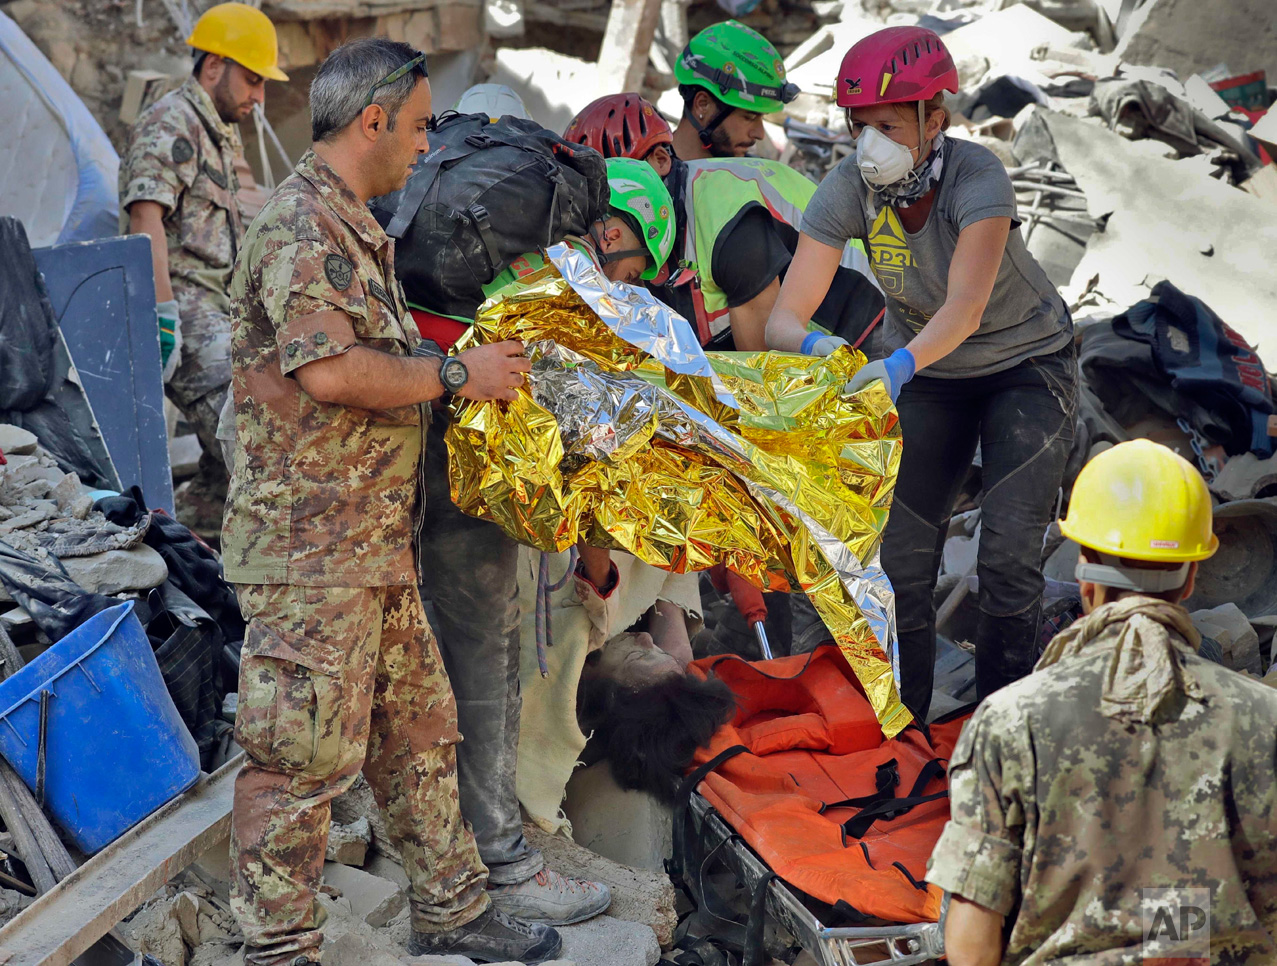 In this Wednesday, Aug. 24, 2016 photo, the body of a victim is pulled out of the rubble following an earthquake in Amatrice Italy. The magnitude 6 quake struck at 3:36 a.m. (0136 GMT) and was felt across a broad swath of central Italy, including Rome where residents of the capital felt a long swaying followed by aftershocks. (AP Photo/Alessandra Tarantino)